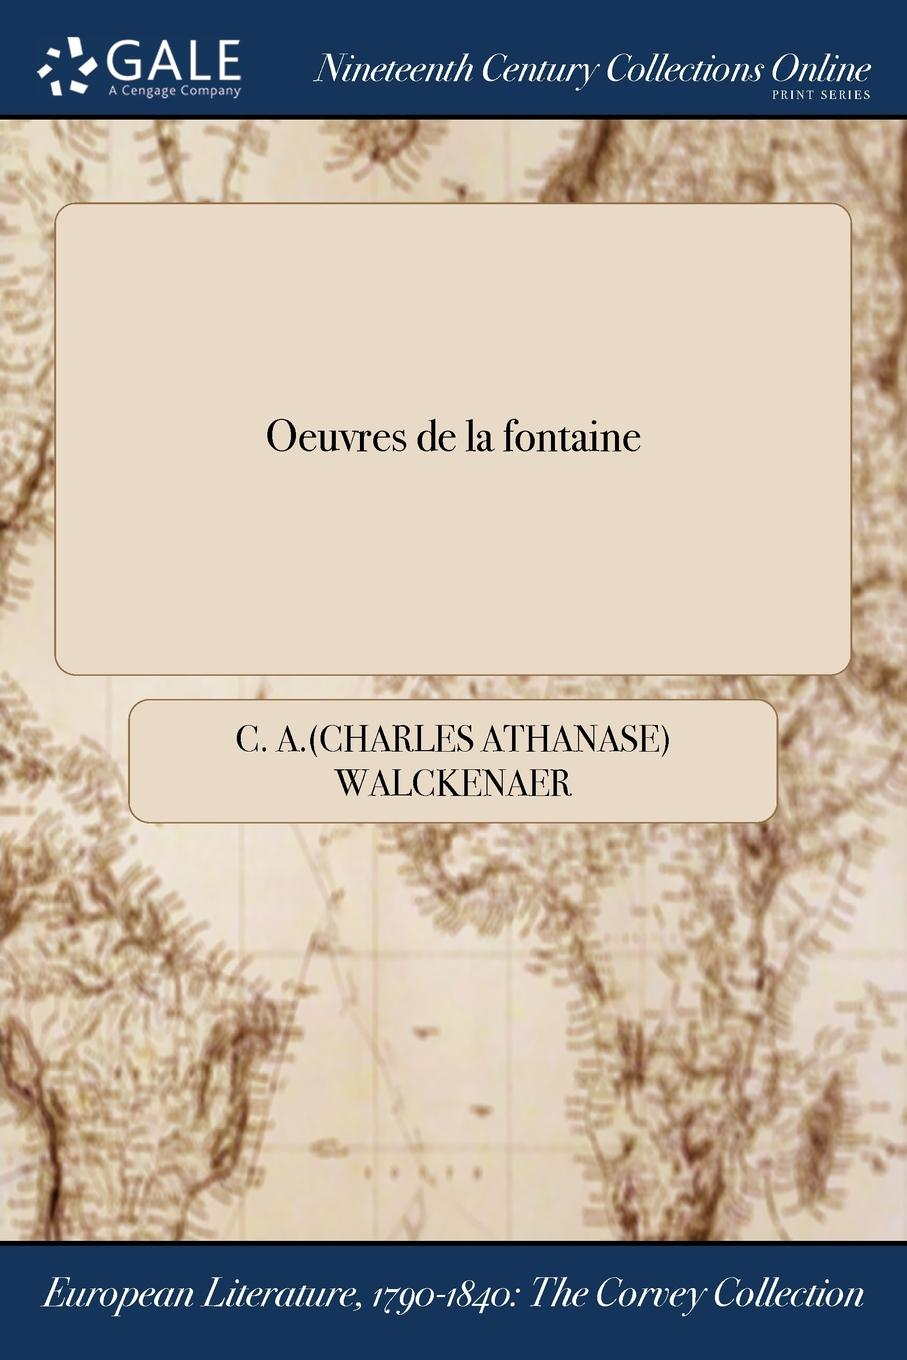 C. A.(Charles Athanase) Walckenaer Oeuvres de la fontaine